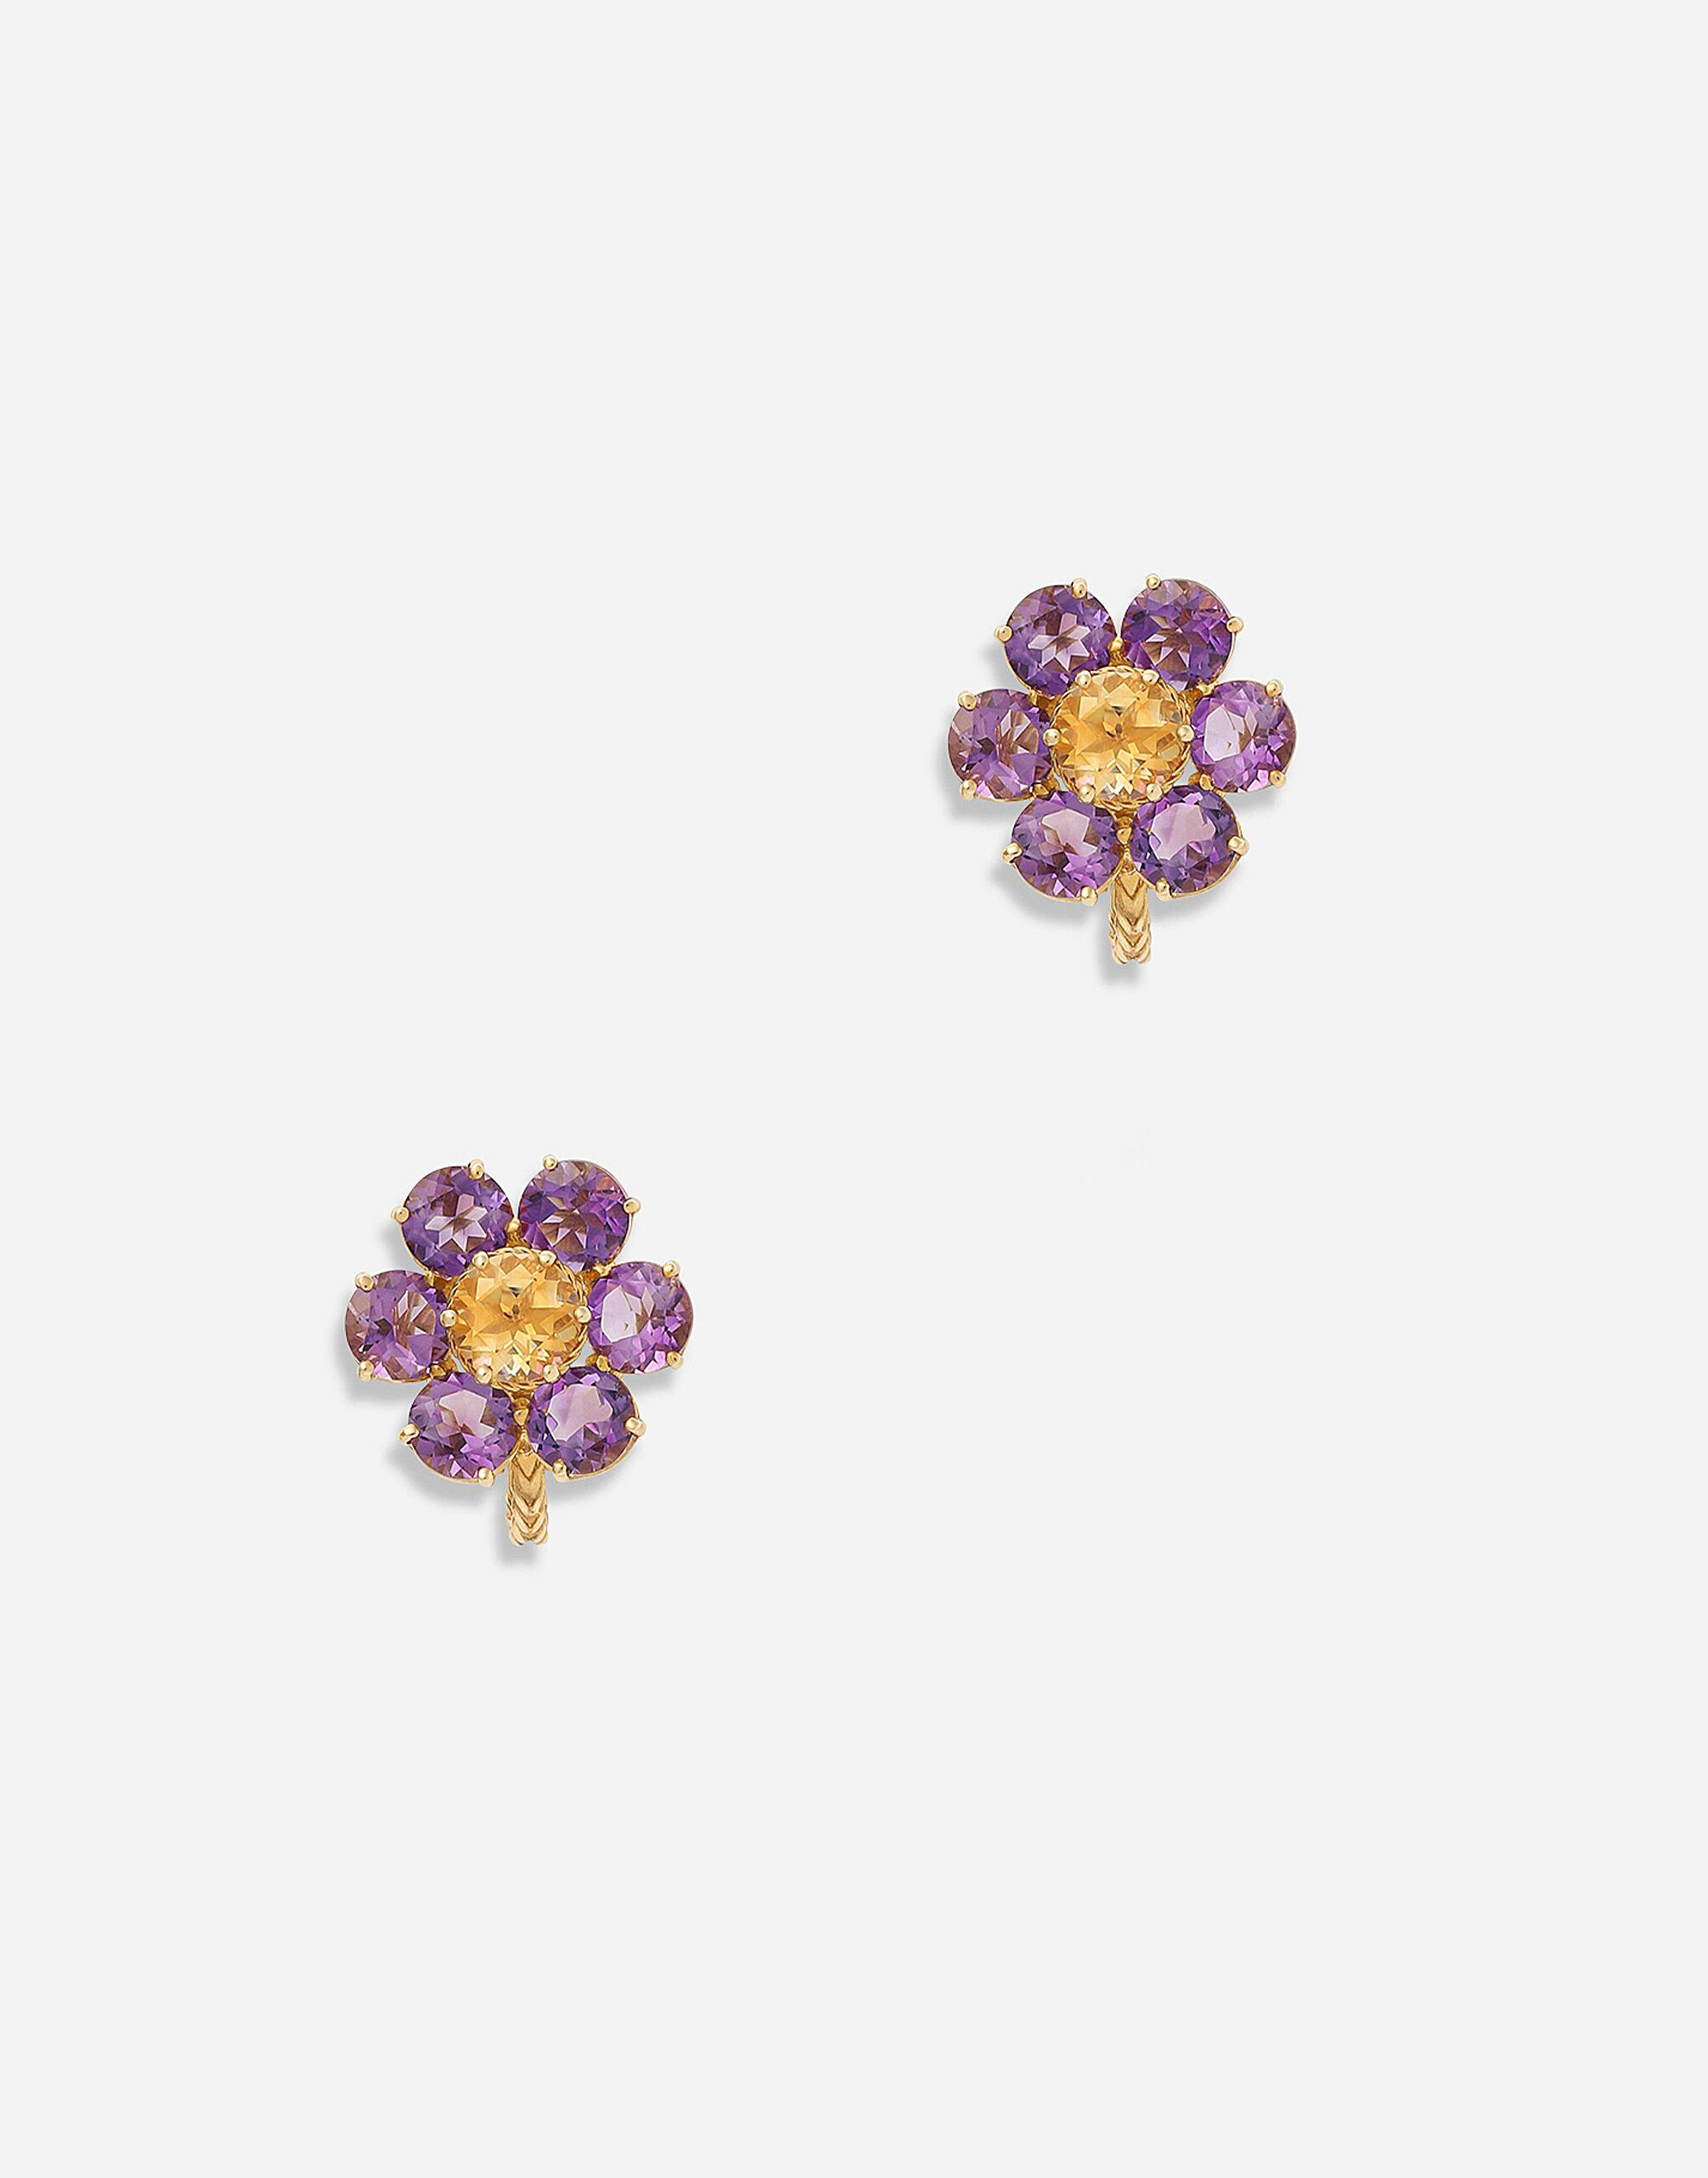 Spring earrings in yellow 18kt gold with amethyst flower motif